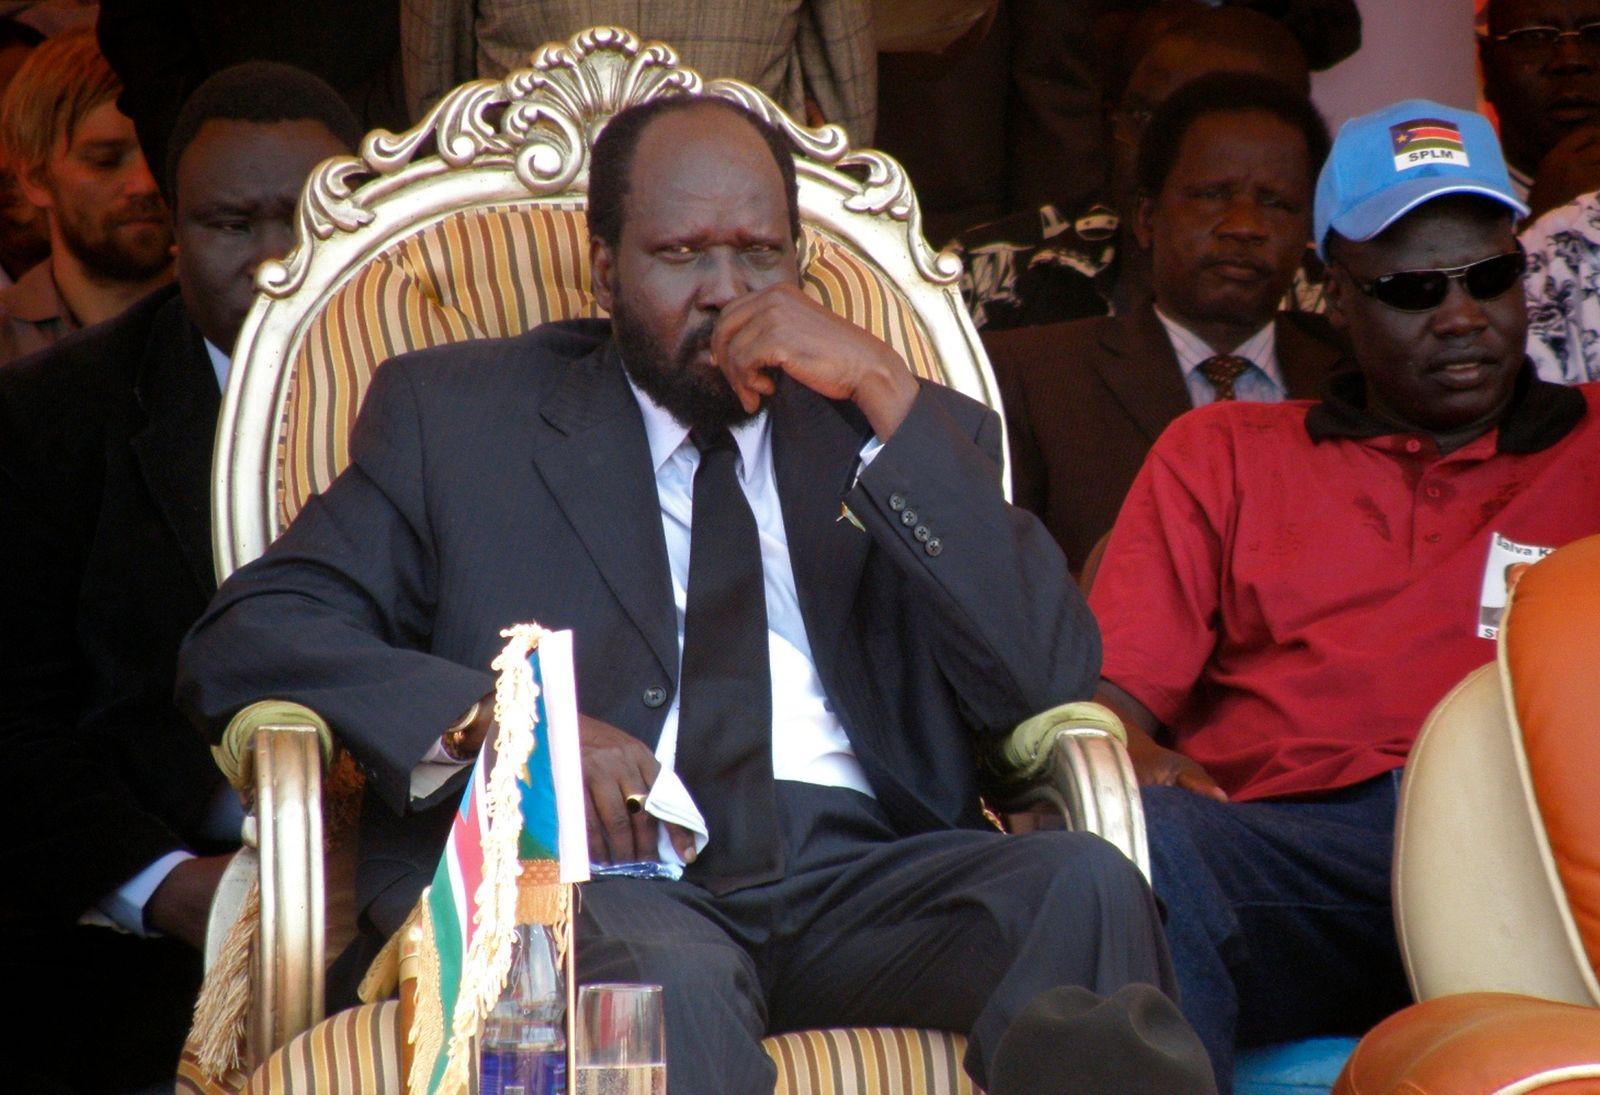 Sudan's Vice President Kiir attends the launch of his campaign in Juba